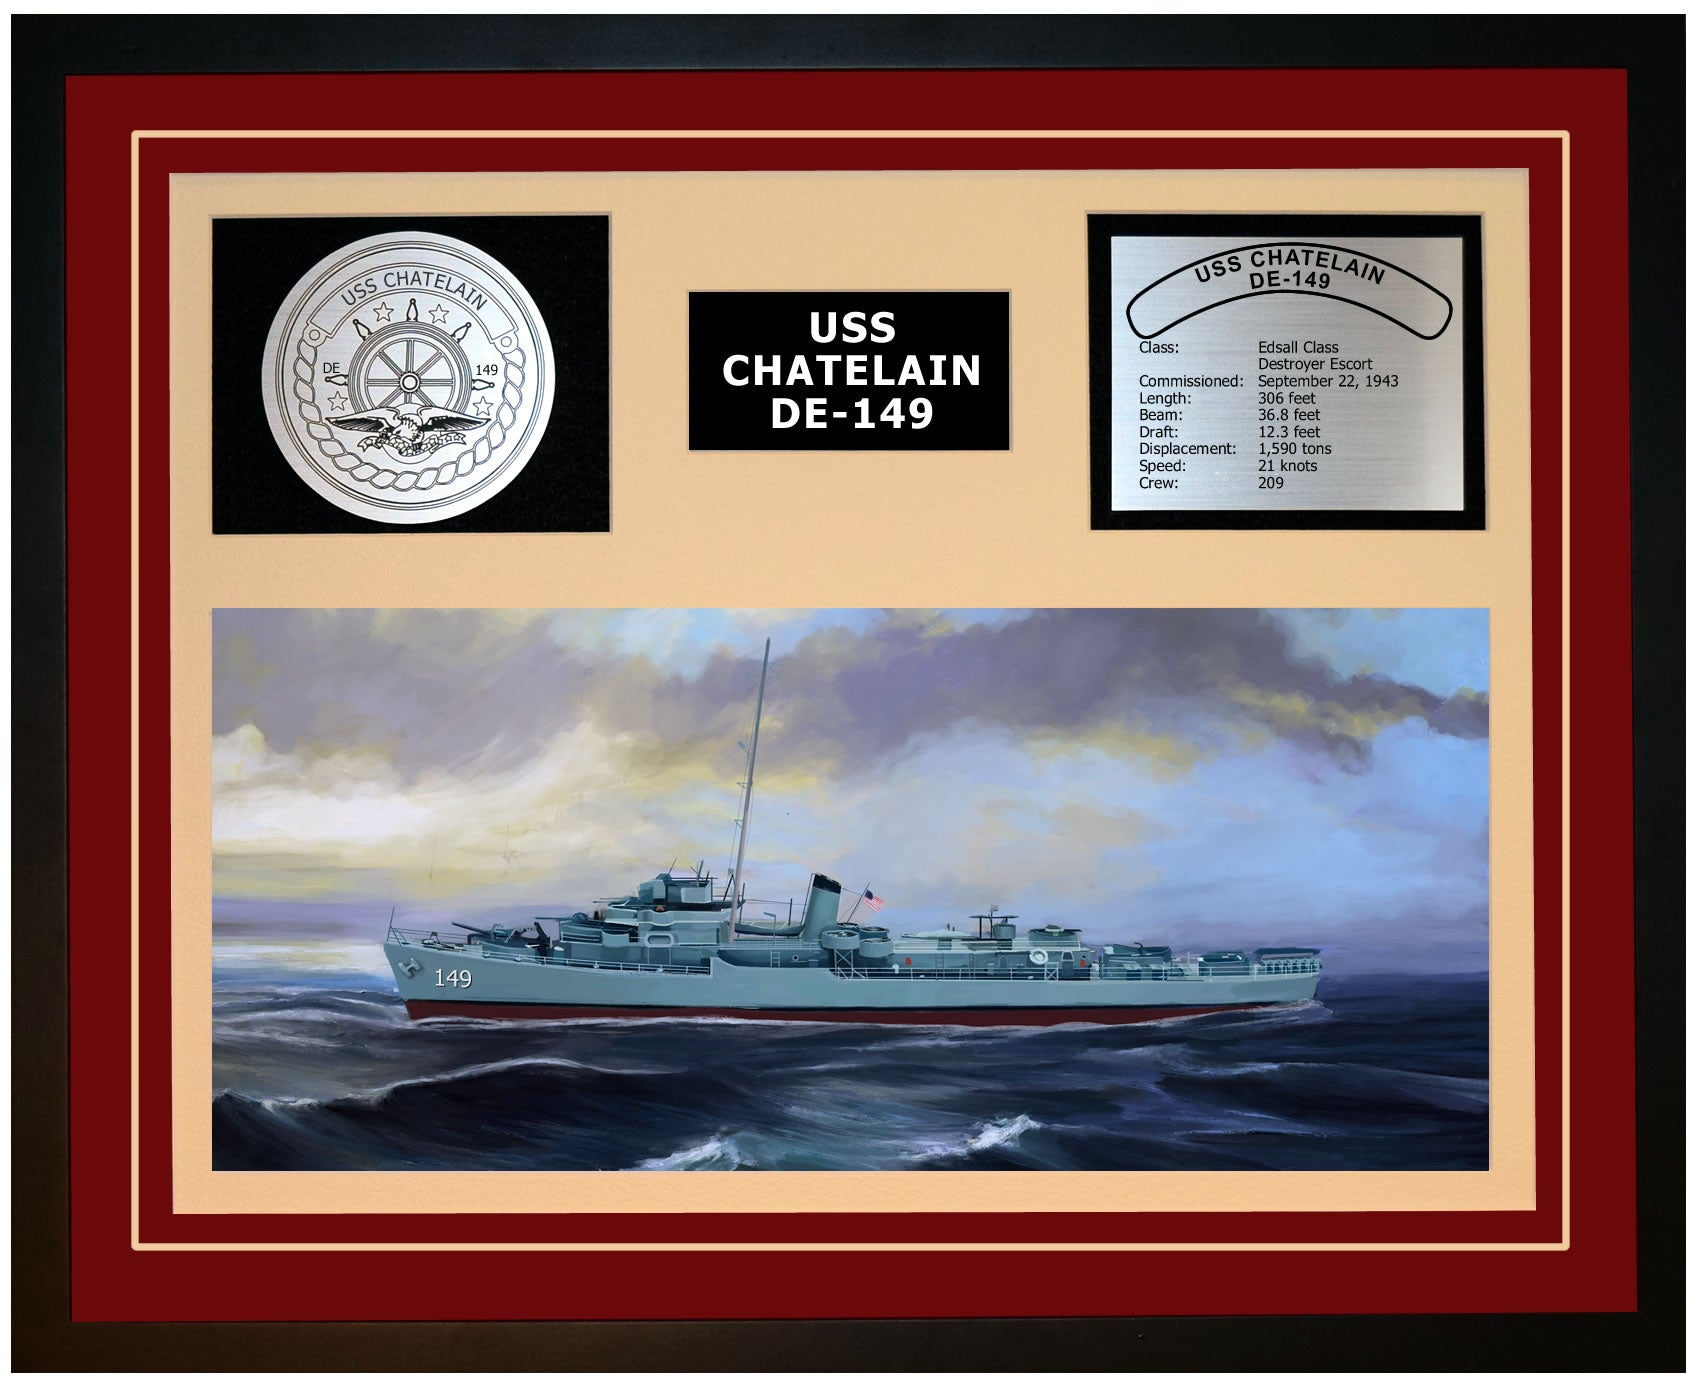 USS CHATELAIN DE-149 Framed Navy Ship Display Burgundy